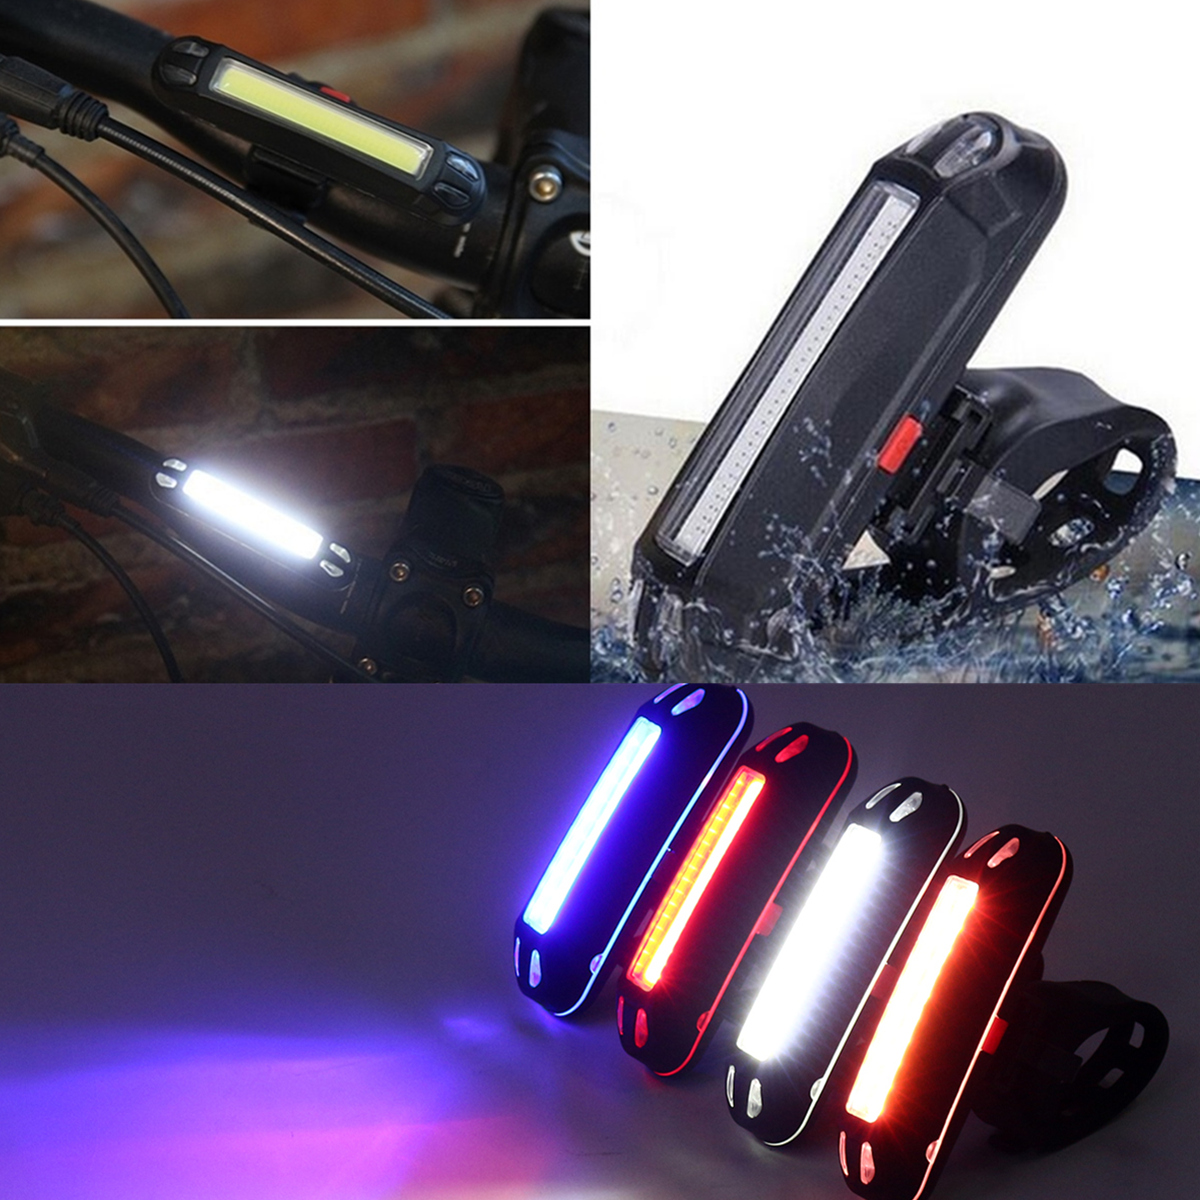 100LM High Brightness LED Bike Tail Light Bicycle MTB Night Warn